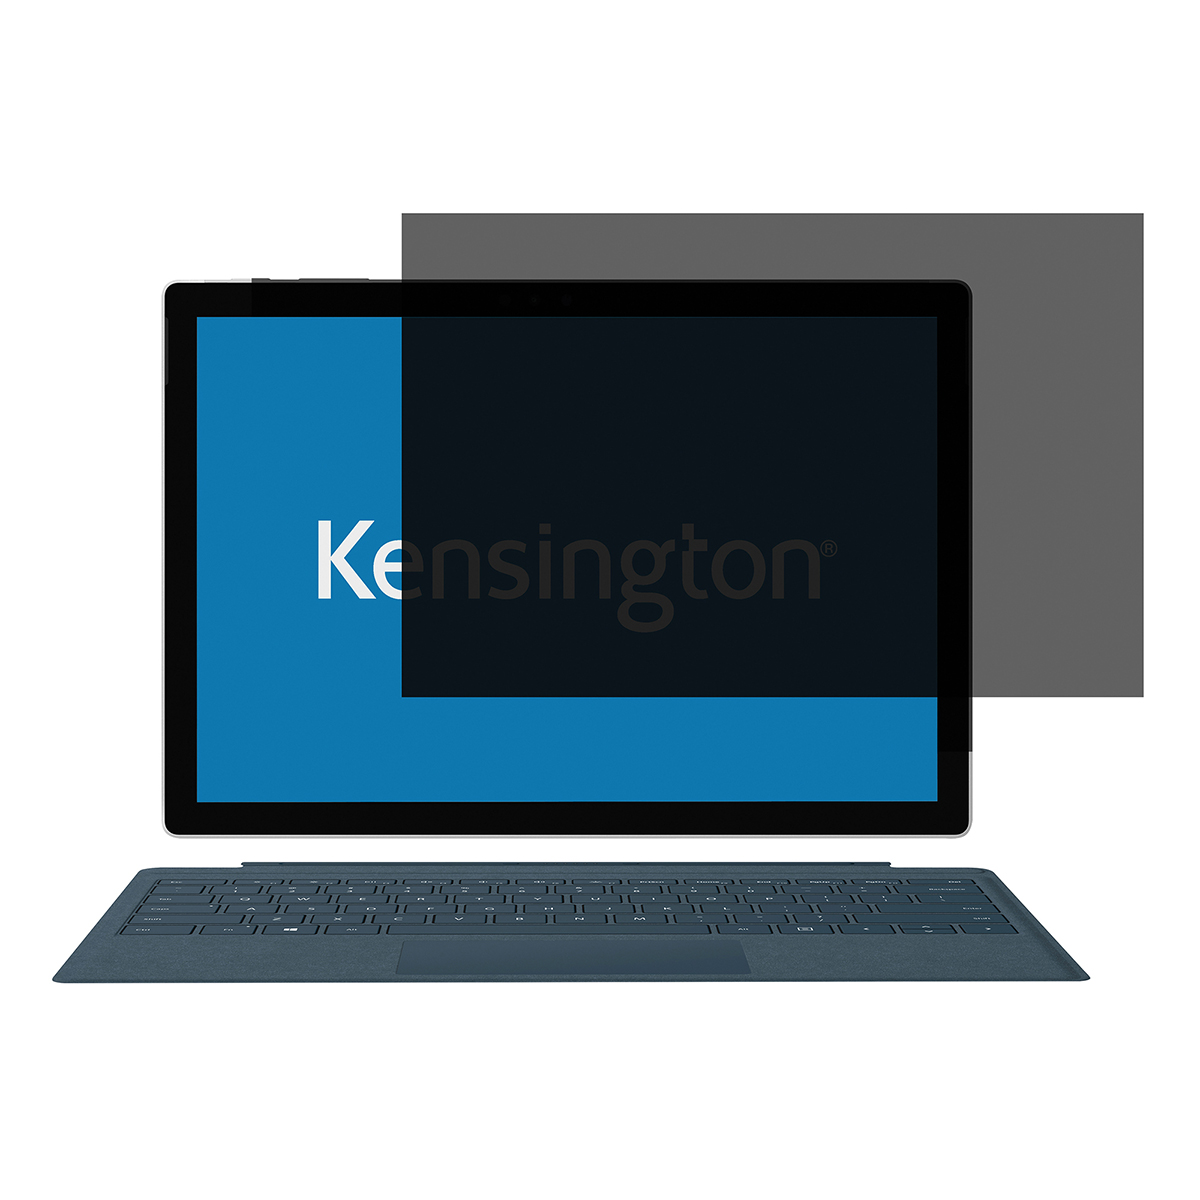 Kensington 626450 Privacy Filter 4 Way Adhesive for Microsoft Surface Pro 4